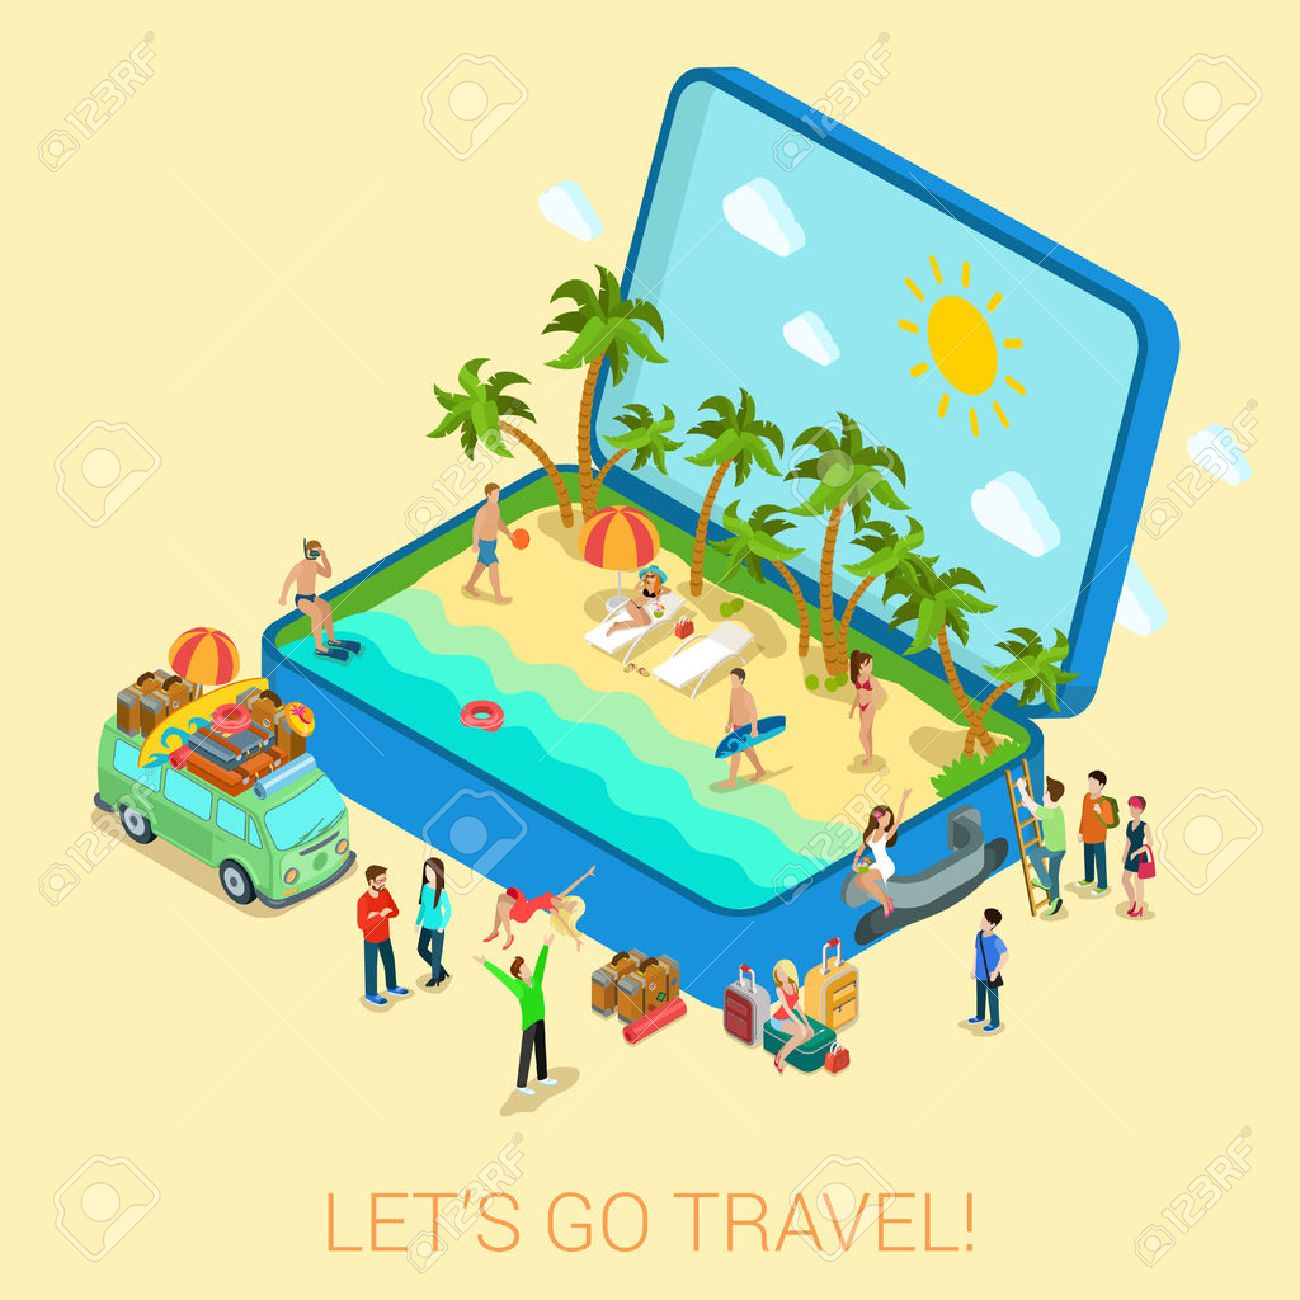 Summertime Travel Beach Vacation Flat 3d Web Isometric Infographic Tourism Concept Vector Template Open Suitcase